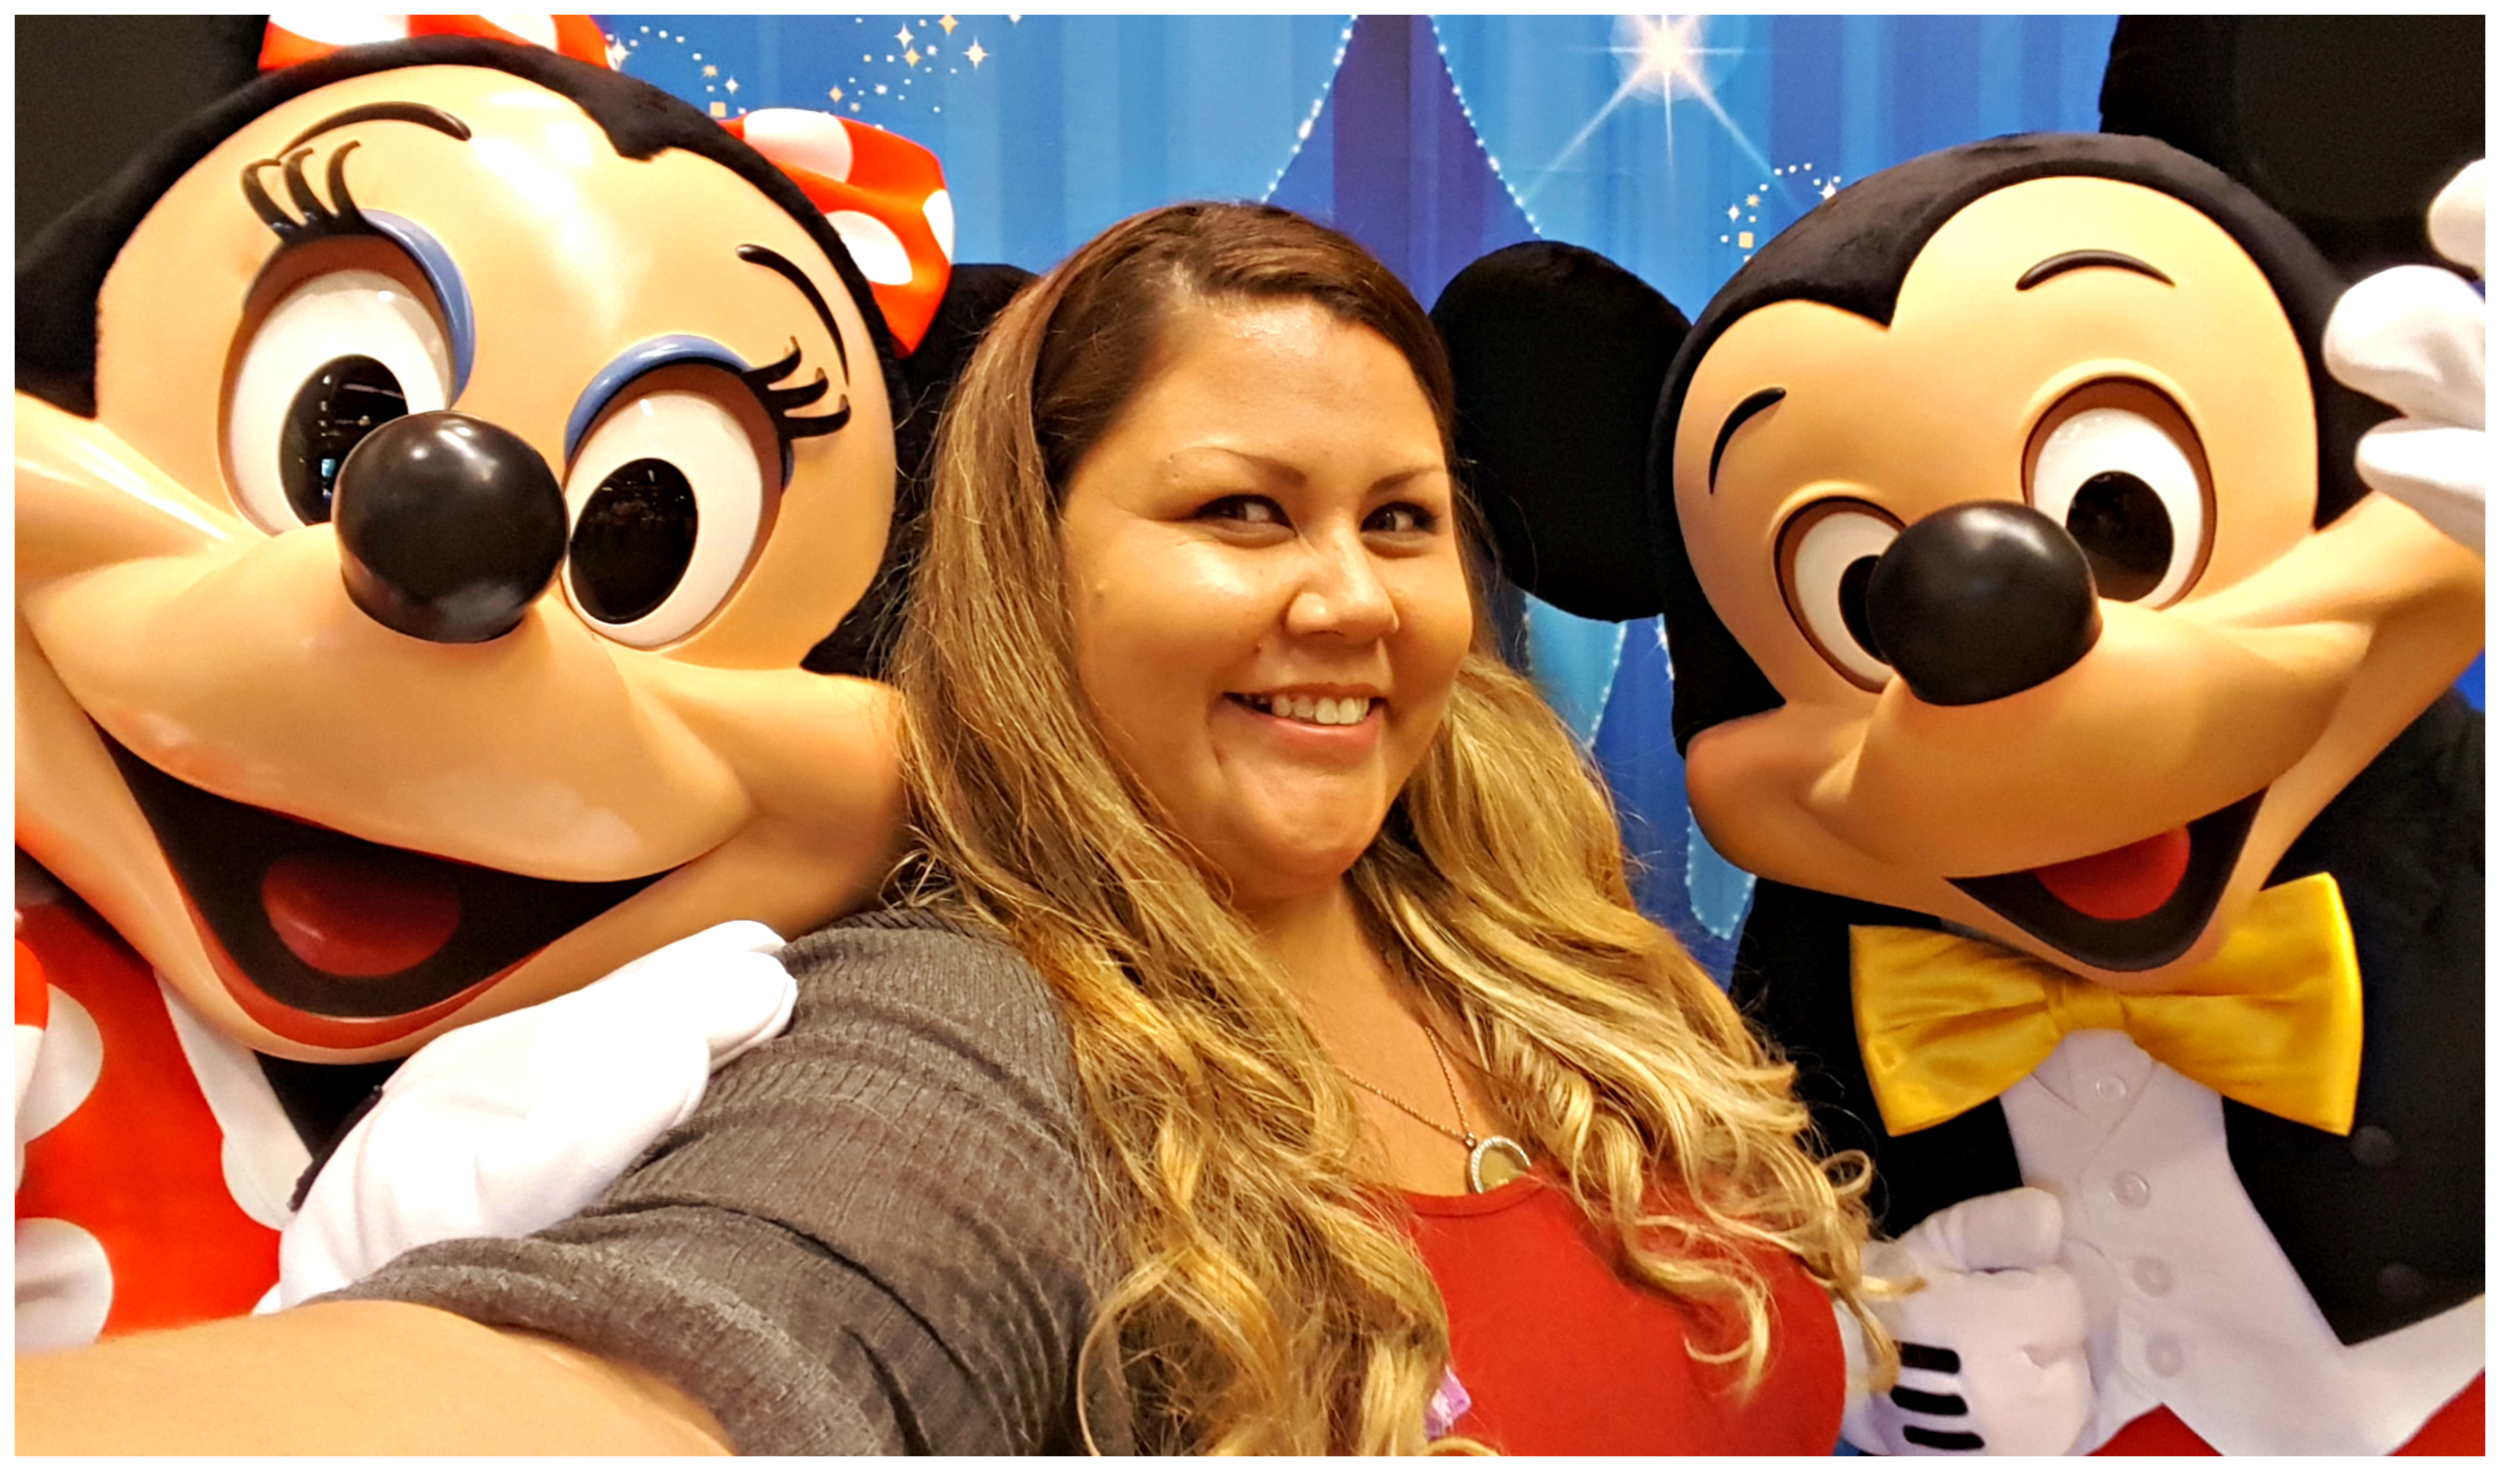 Hanging with Mickey and Minnie